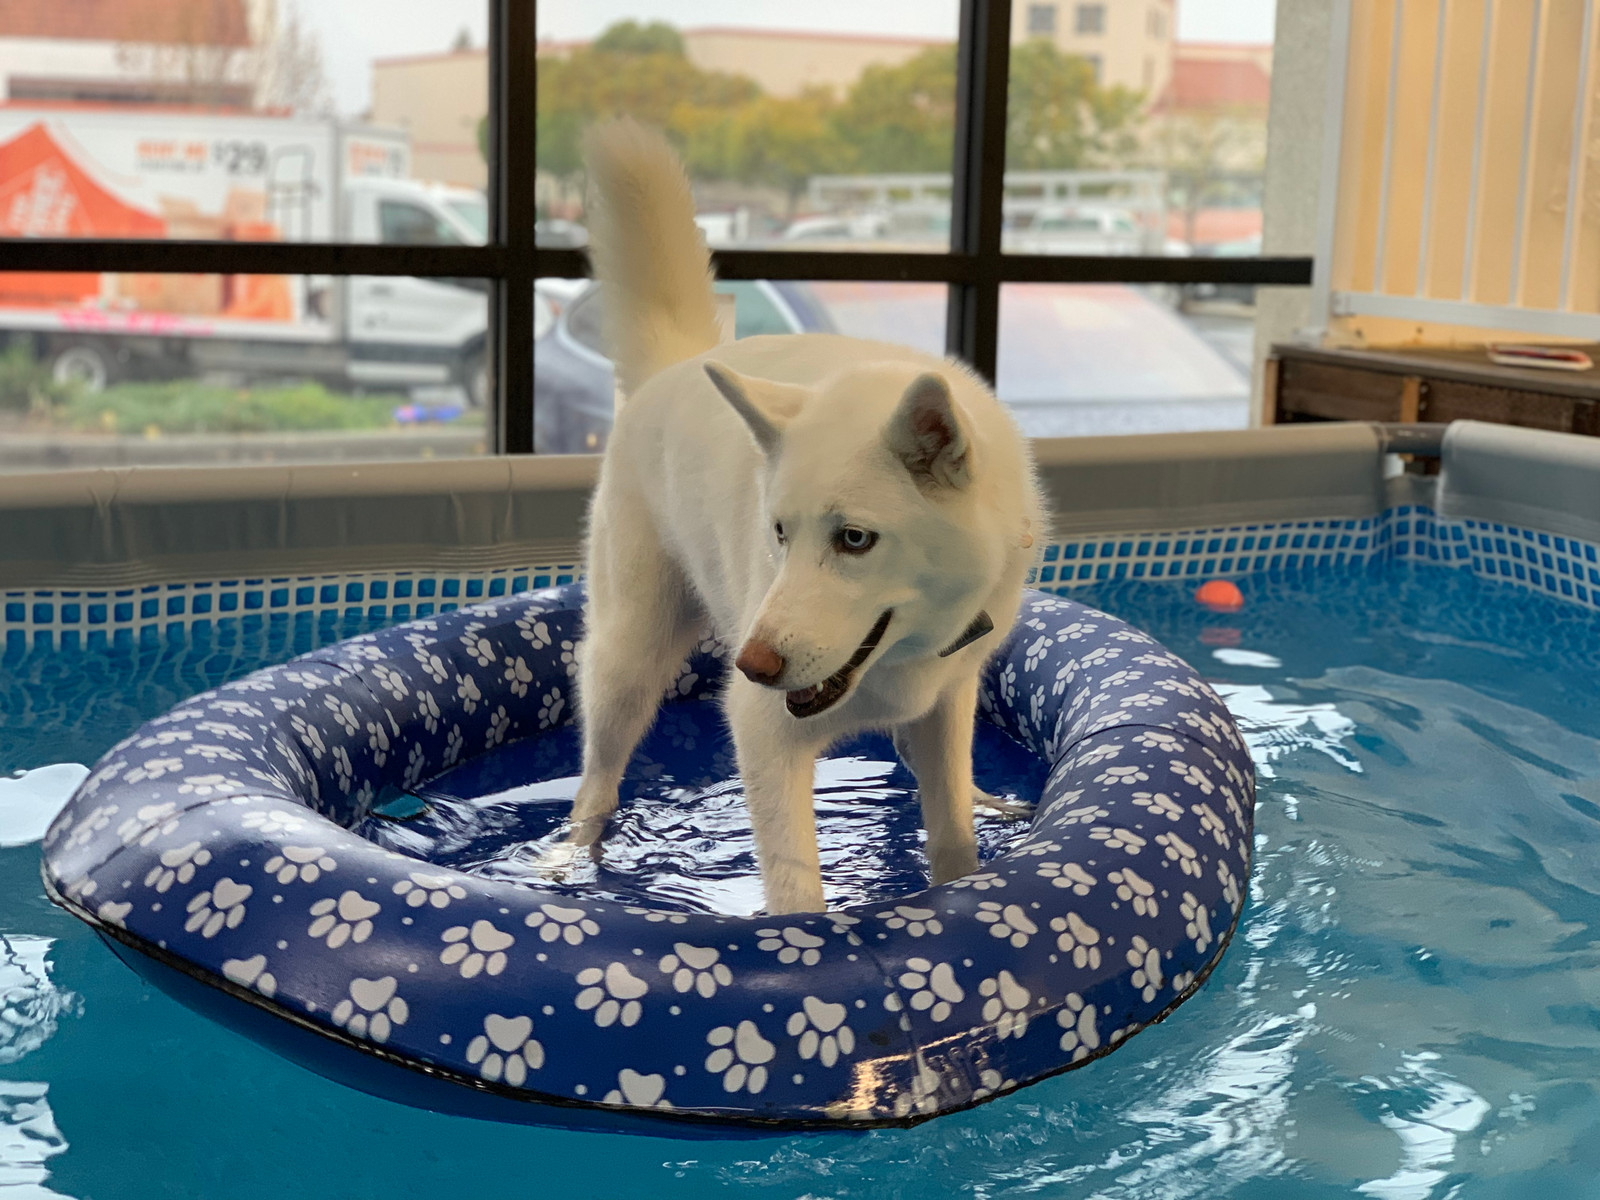 Surfing the pools | Swimming Pool For Dogs SF Bay Area | Dog ...